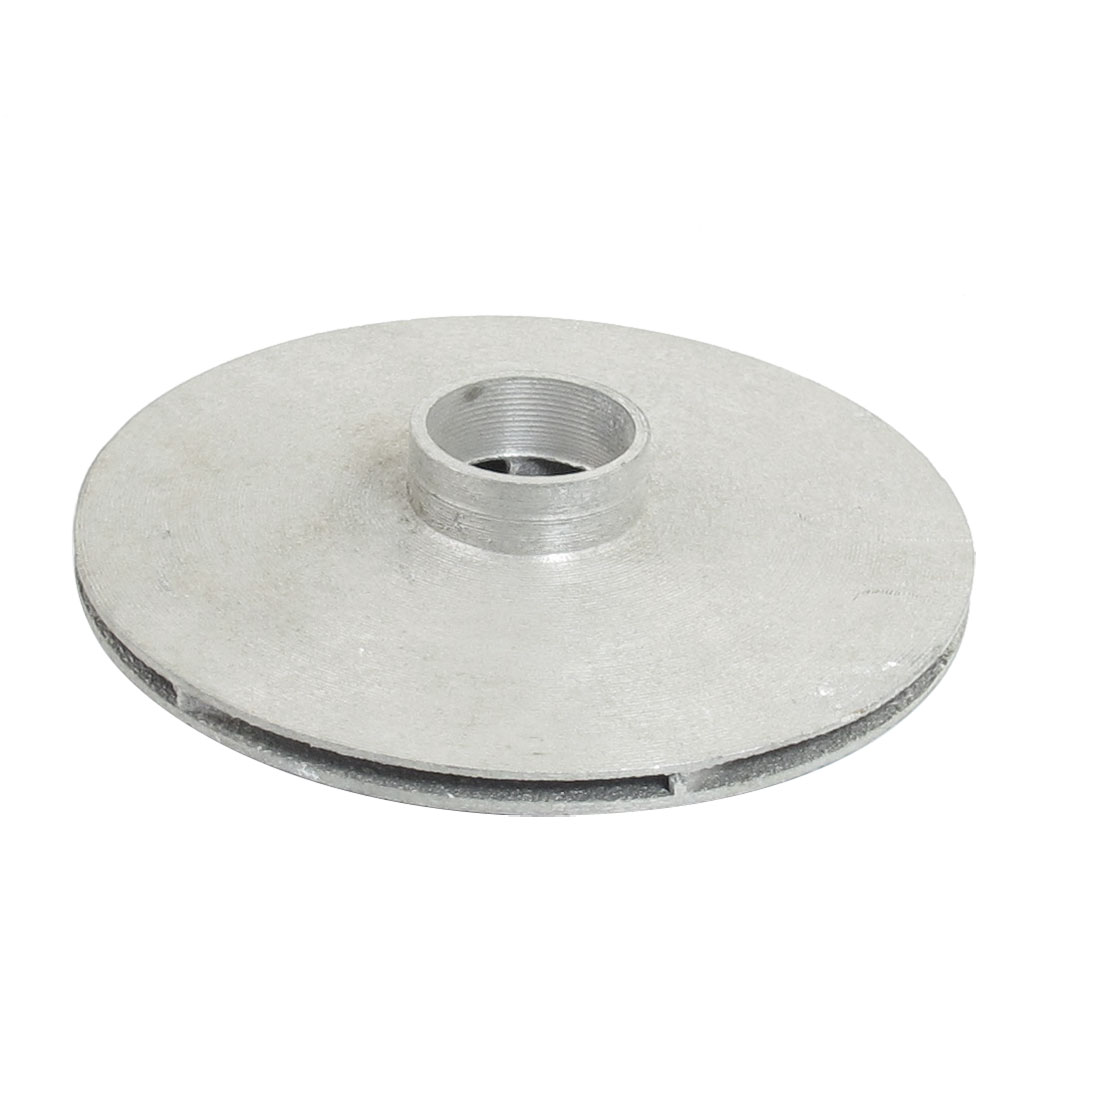 3.5cm Hole Diameter Aluminum Precision Pump Impeller Sand Casting Part